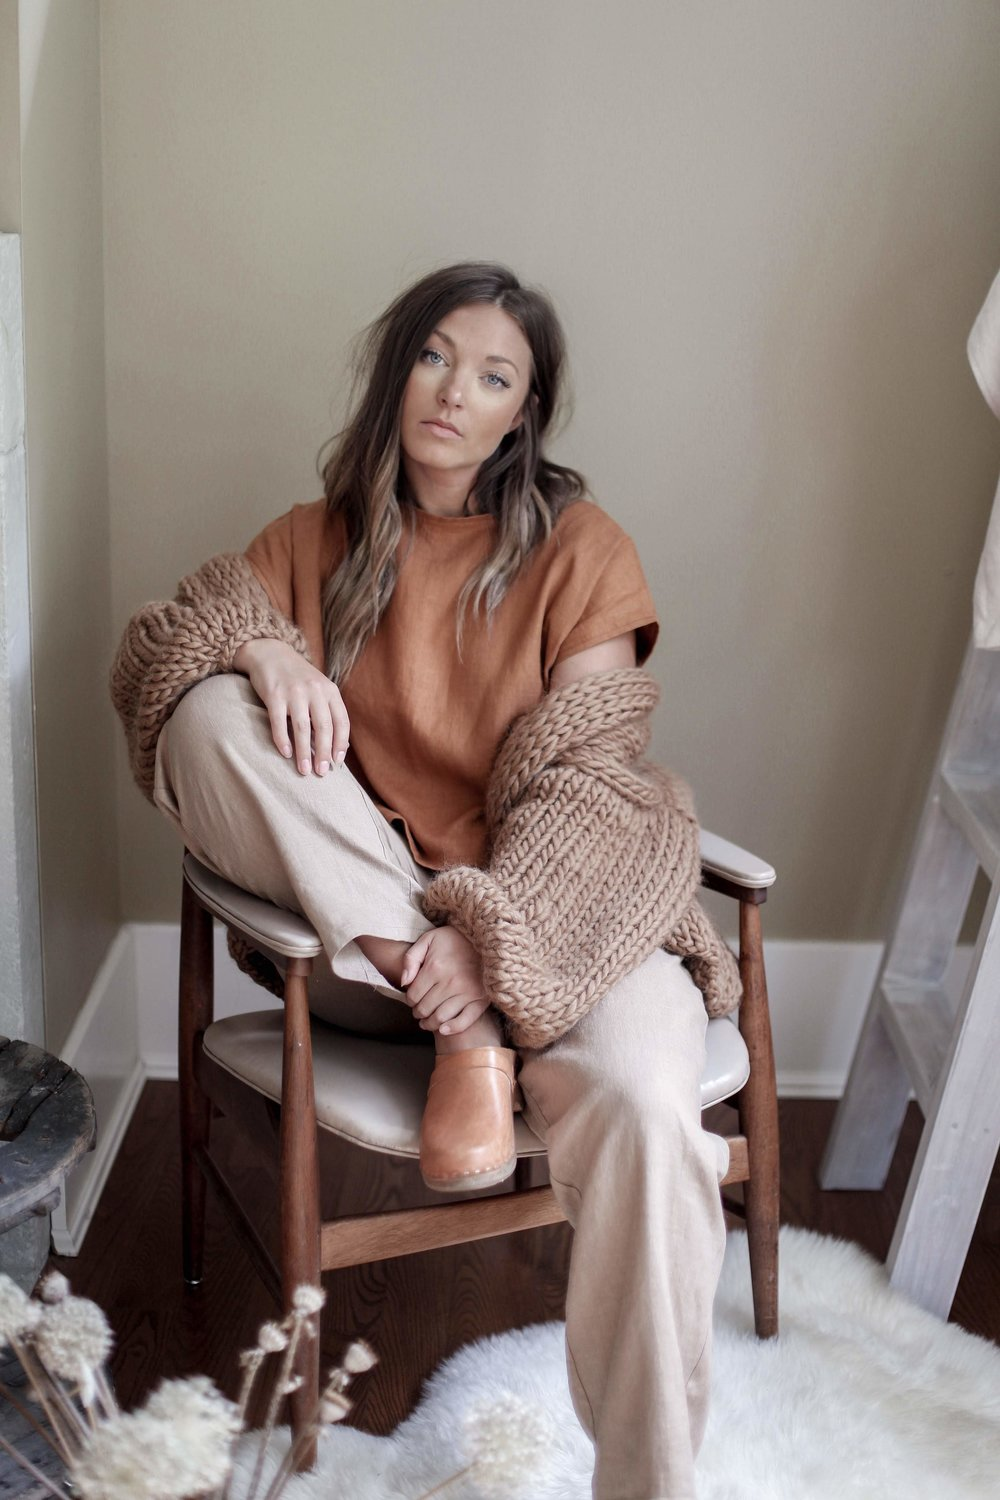 nomi-designs_jessie-top_rust-colored-natural-linen-short-sleeve-top_front_paired-with-lyndsey-pants_styled-with-hendrik-lou-sweater.jpg